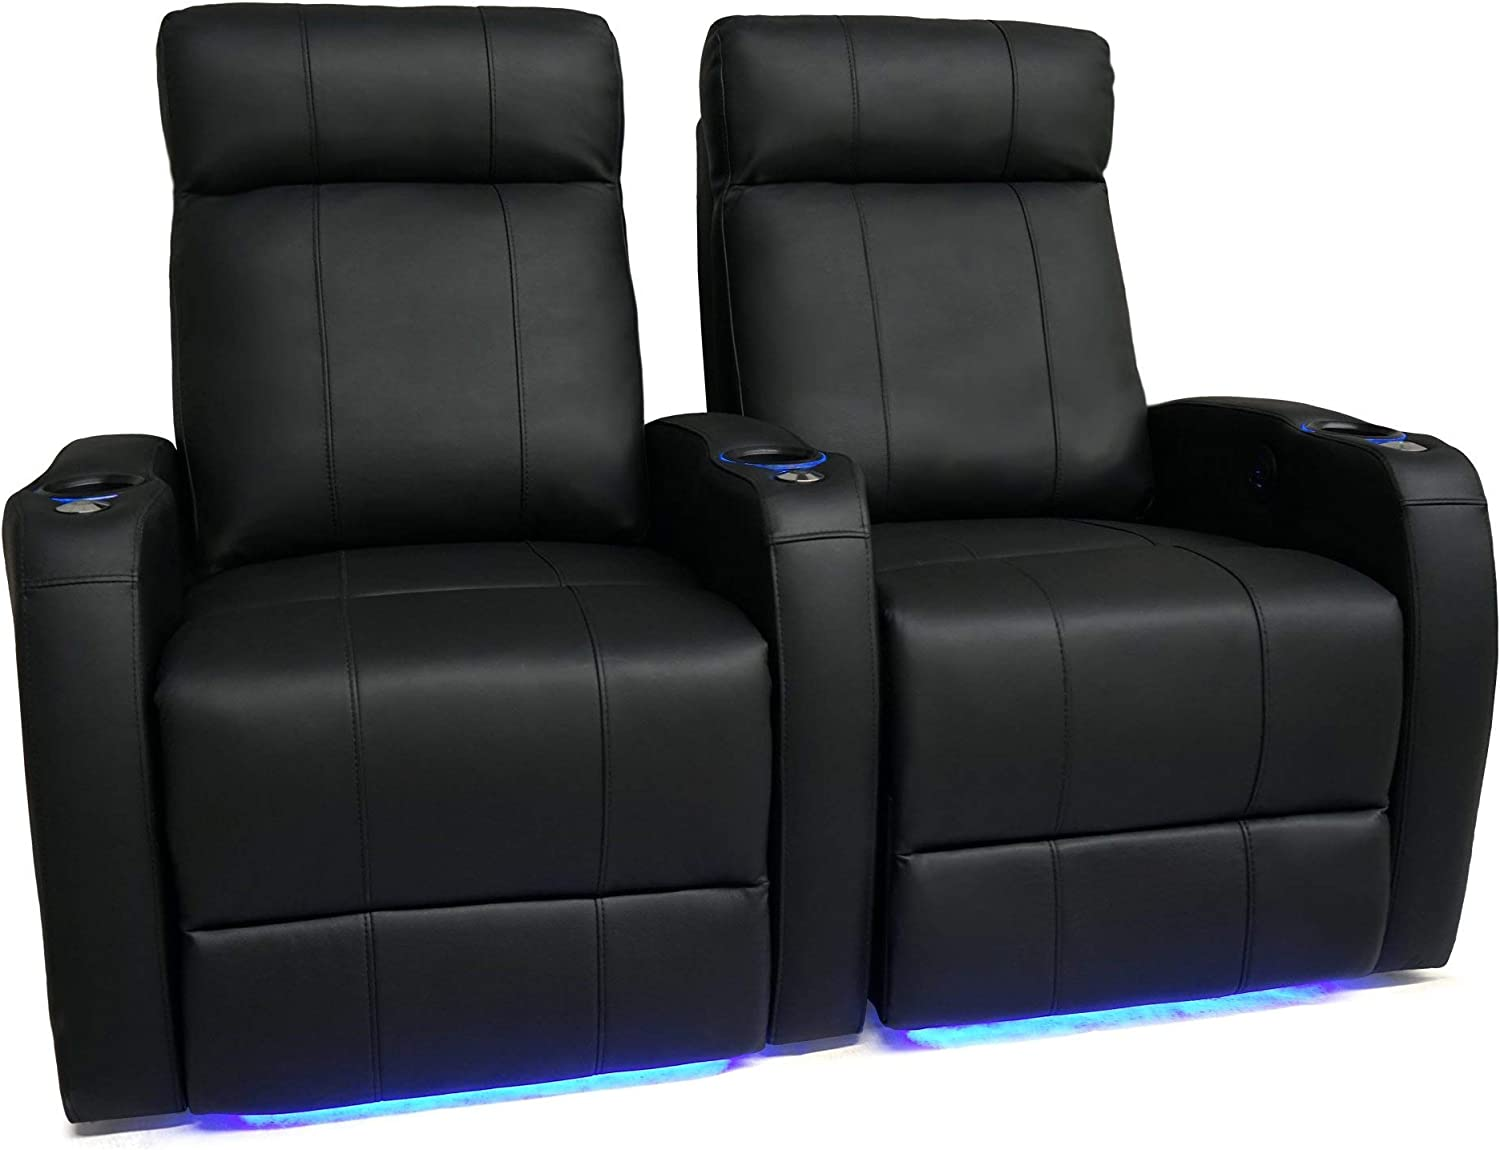 Amazon Com Valencia Syracuse Home Theater Seating Premium Top Grain 9000 Leather Power Recliner Led Lighting Row Of 2 Kitchen Dining